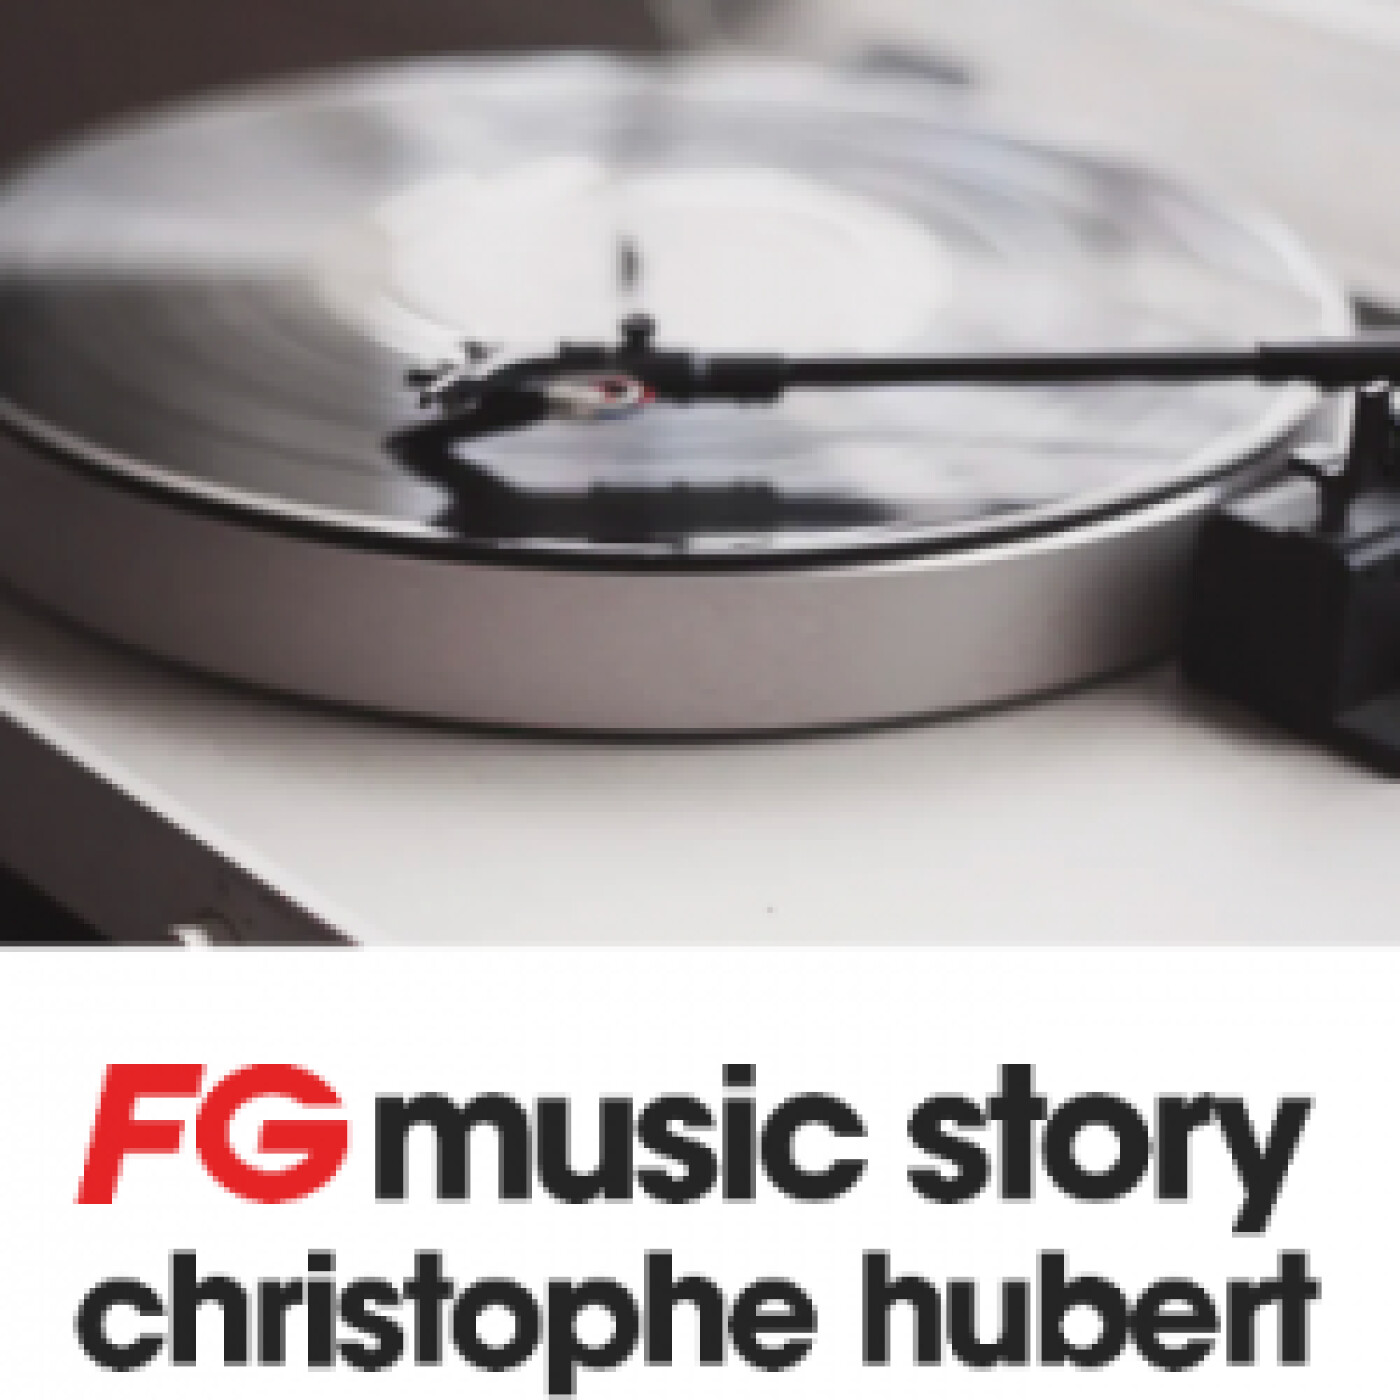 FG MUSIC STORY : LOST FREQUENCIES